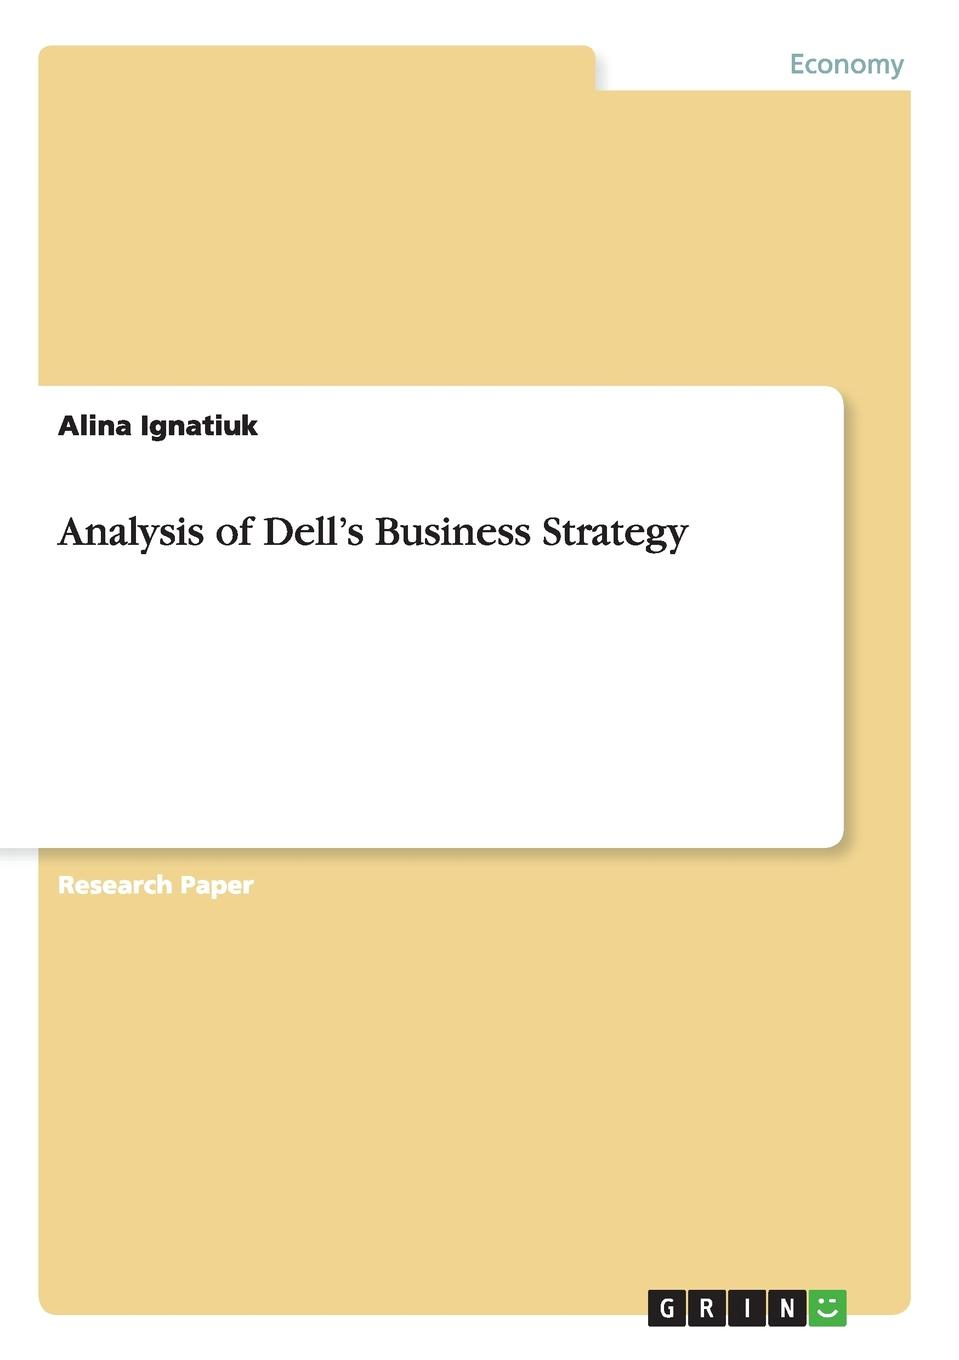 Alina Ignatiuk Analysis of Dell.s Business Strategy andrew frawley igniting customer connections fire up your company s growth by multiplying customer experience and engagement